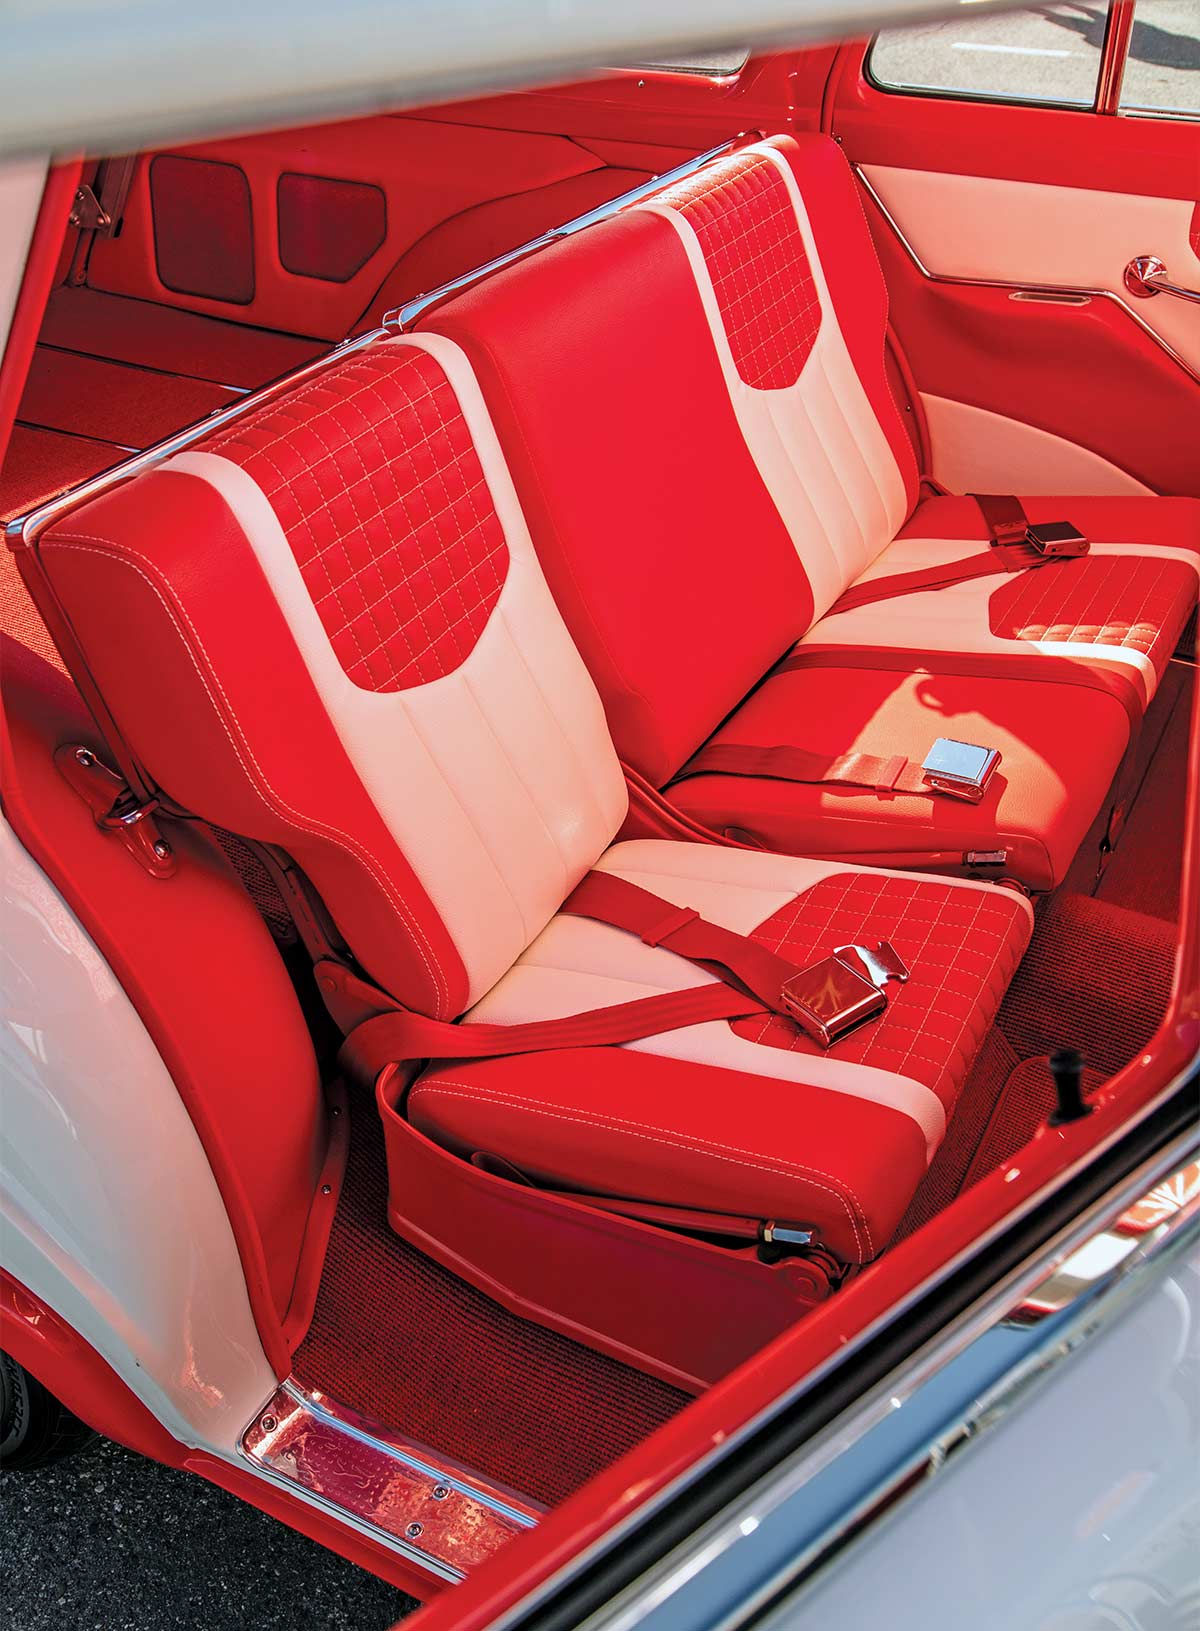 1956 Ford Country Sedan Wagon interior red and white upholstery